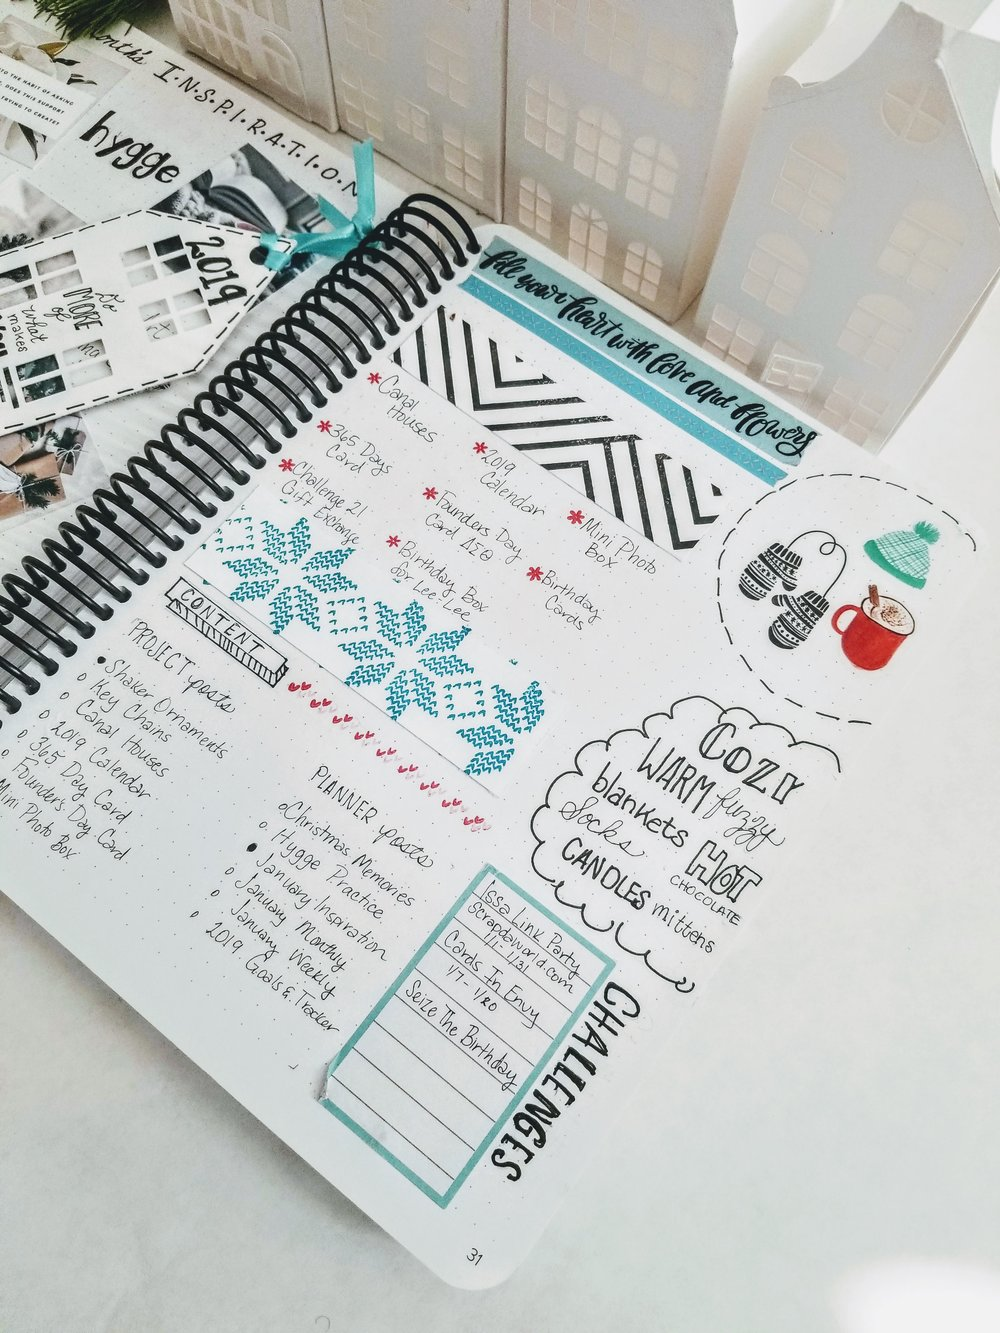 I also use this page to plan for my crafts, content, and challenges.